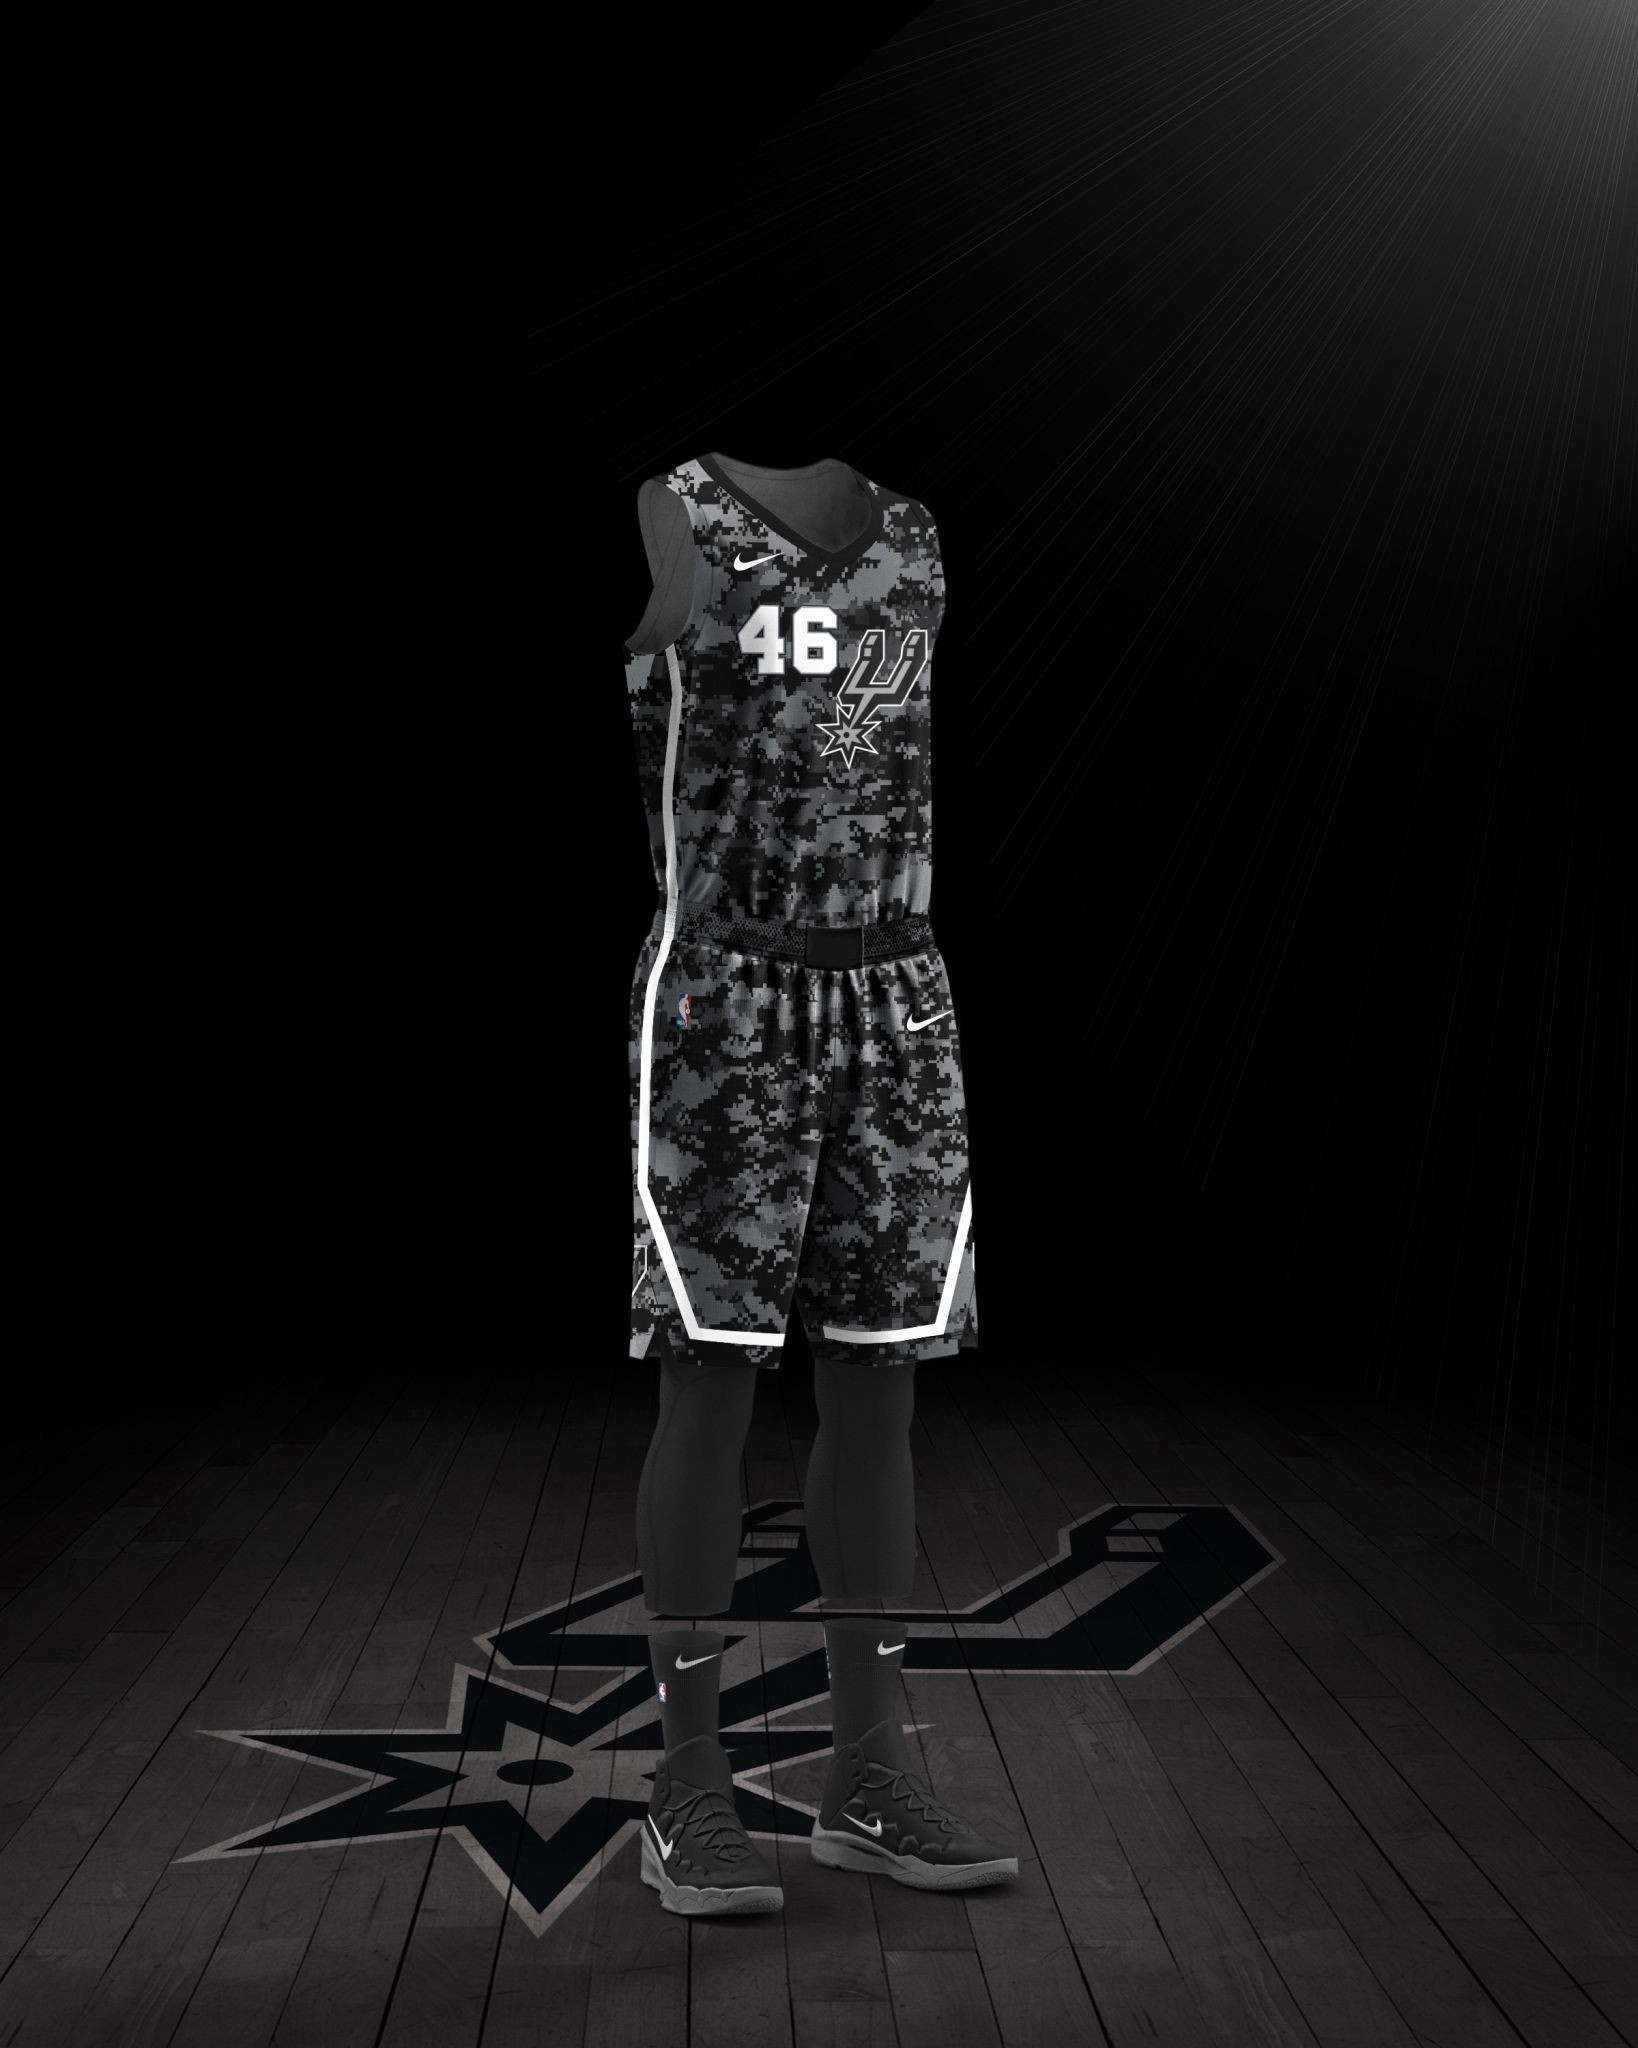 5b9400aec4f Spurs announce another camouflage jersey as this season's Nike City Edition  uniform - Laredo Morning Times